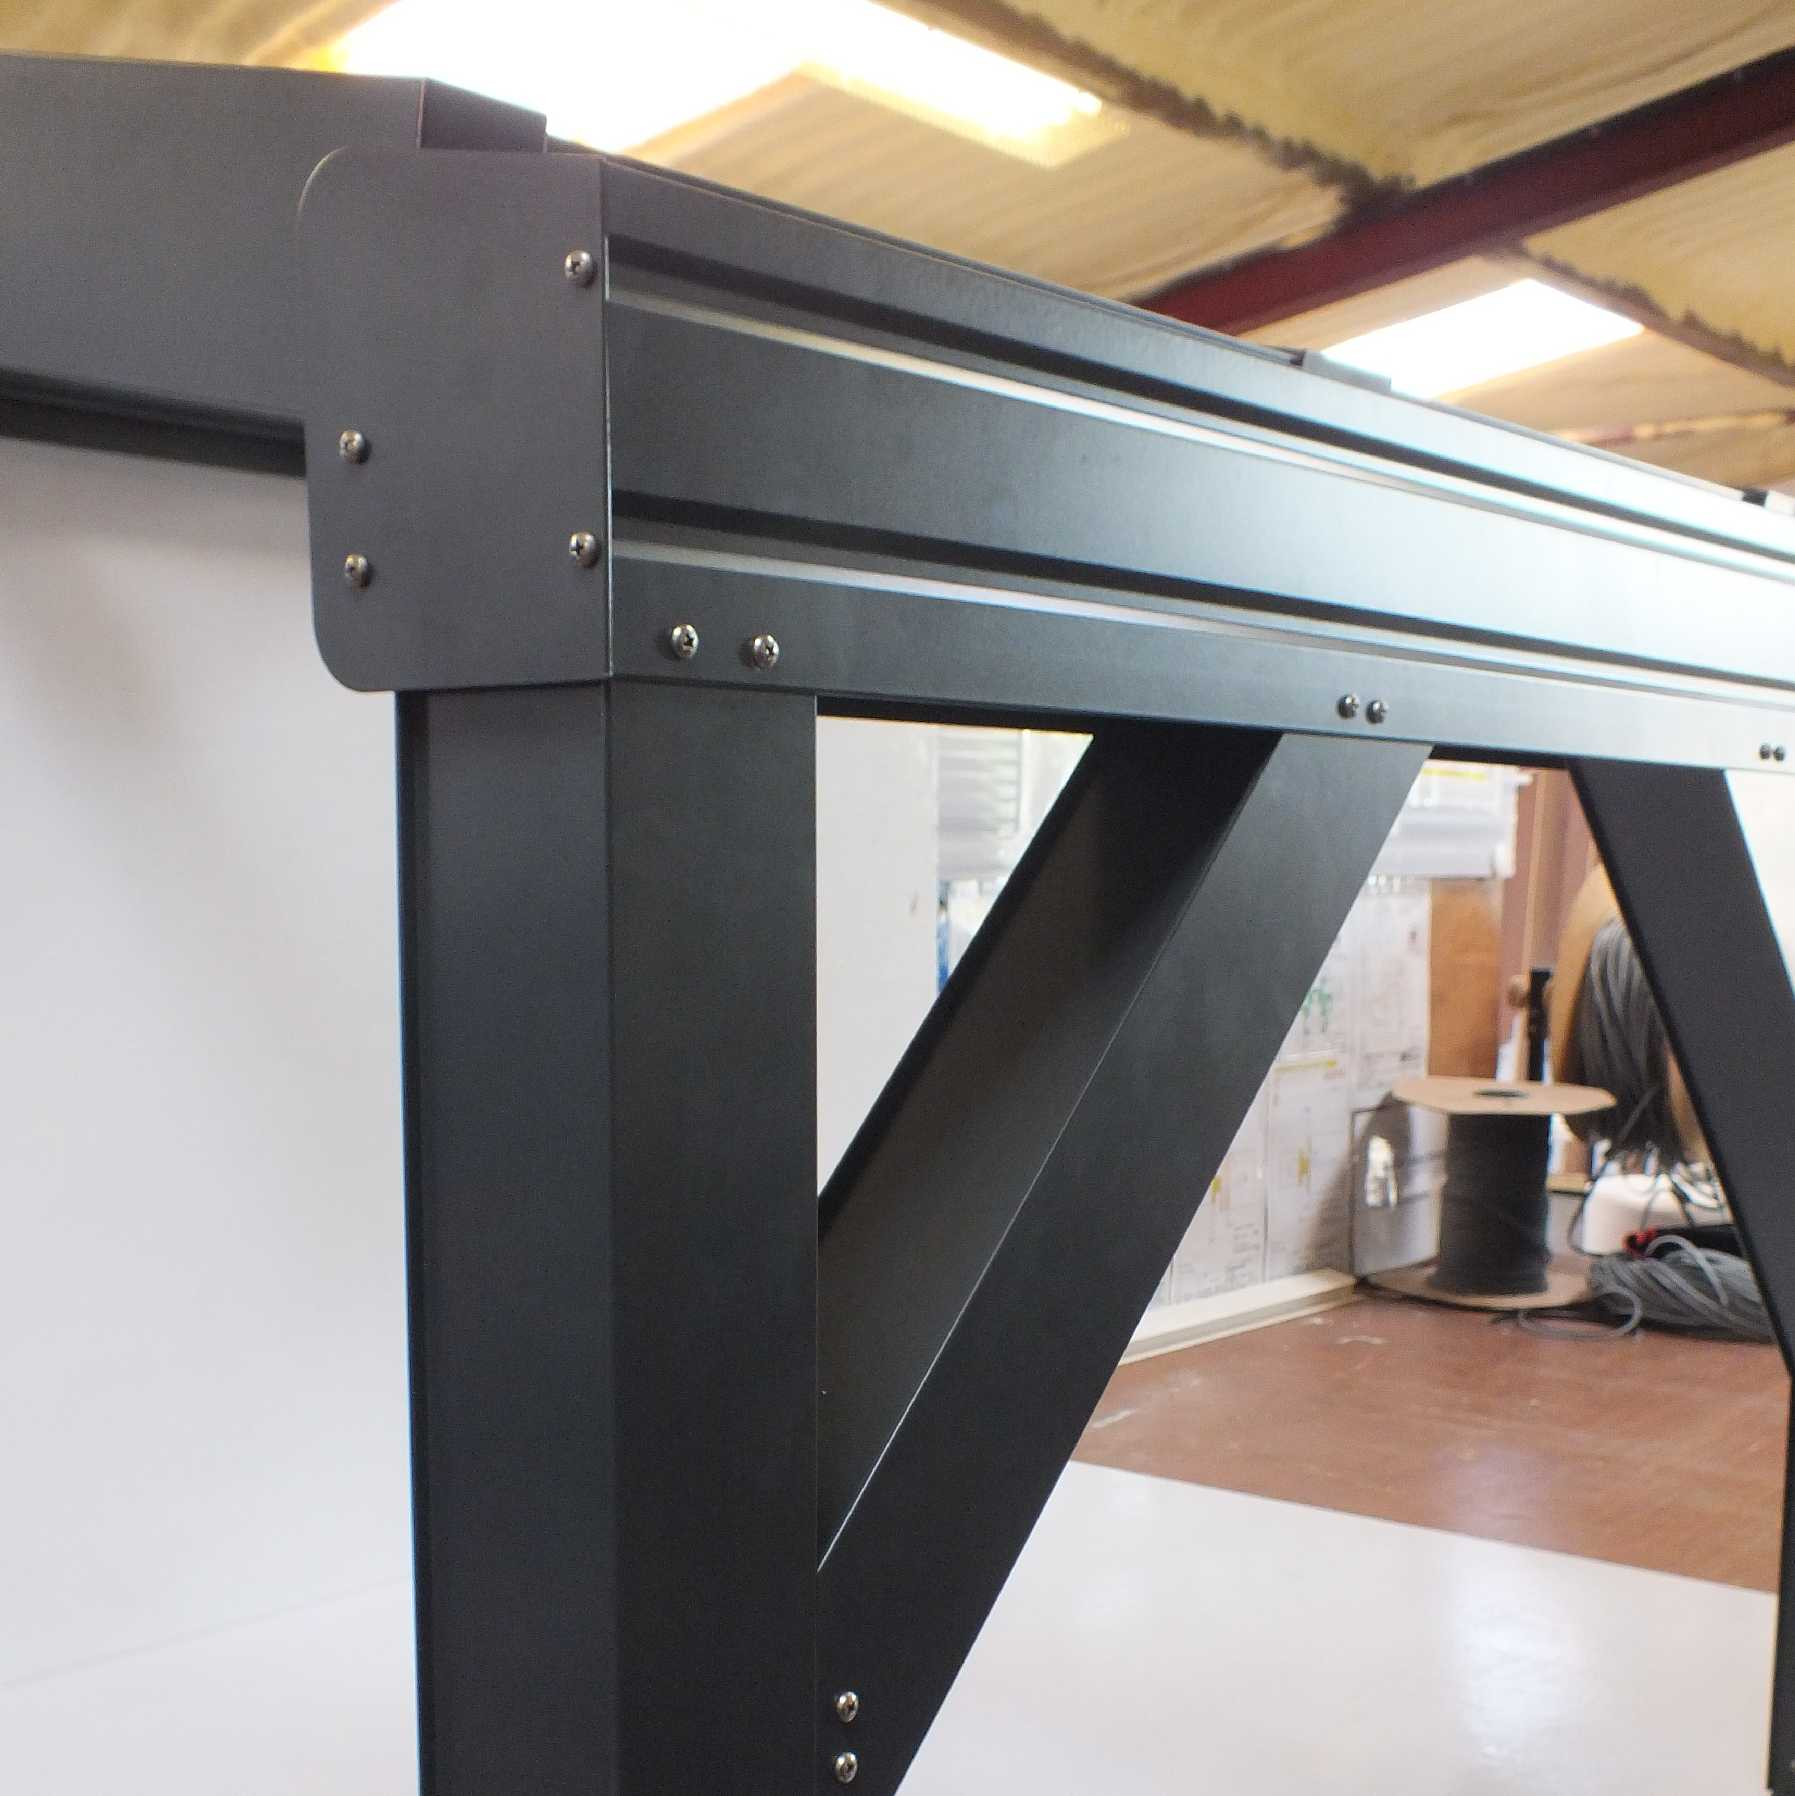 Omega Smart Lean-To Canopy, Anthracite Grey, UNGLAZED for 6mm Glazing - 4.9m (W) x 3.0m (P), (3) Supporting Posts from Omega Build